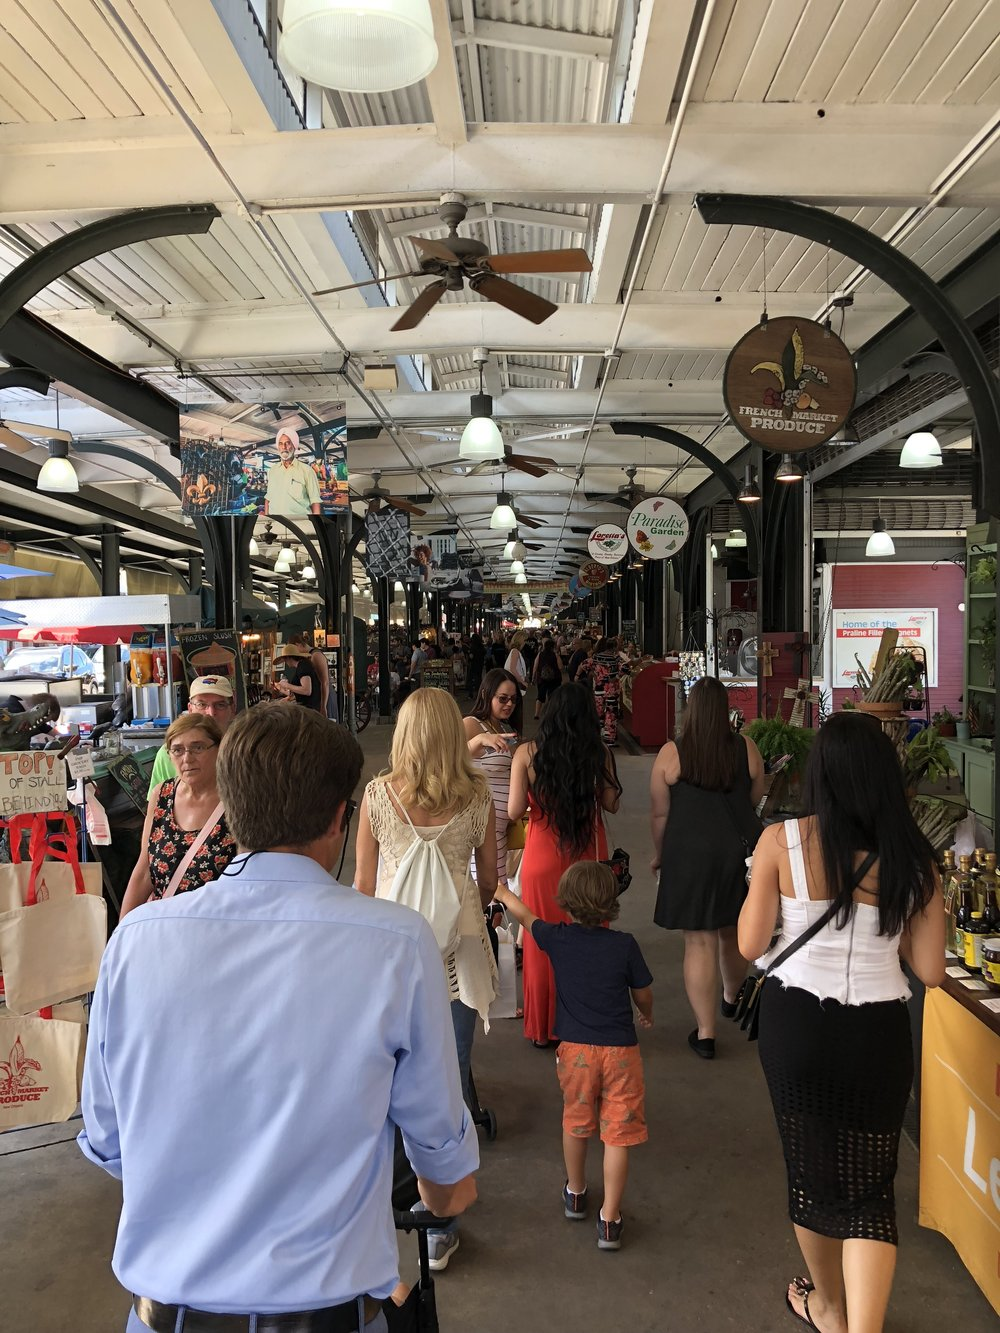 Entering the French Market in New Orleans